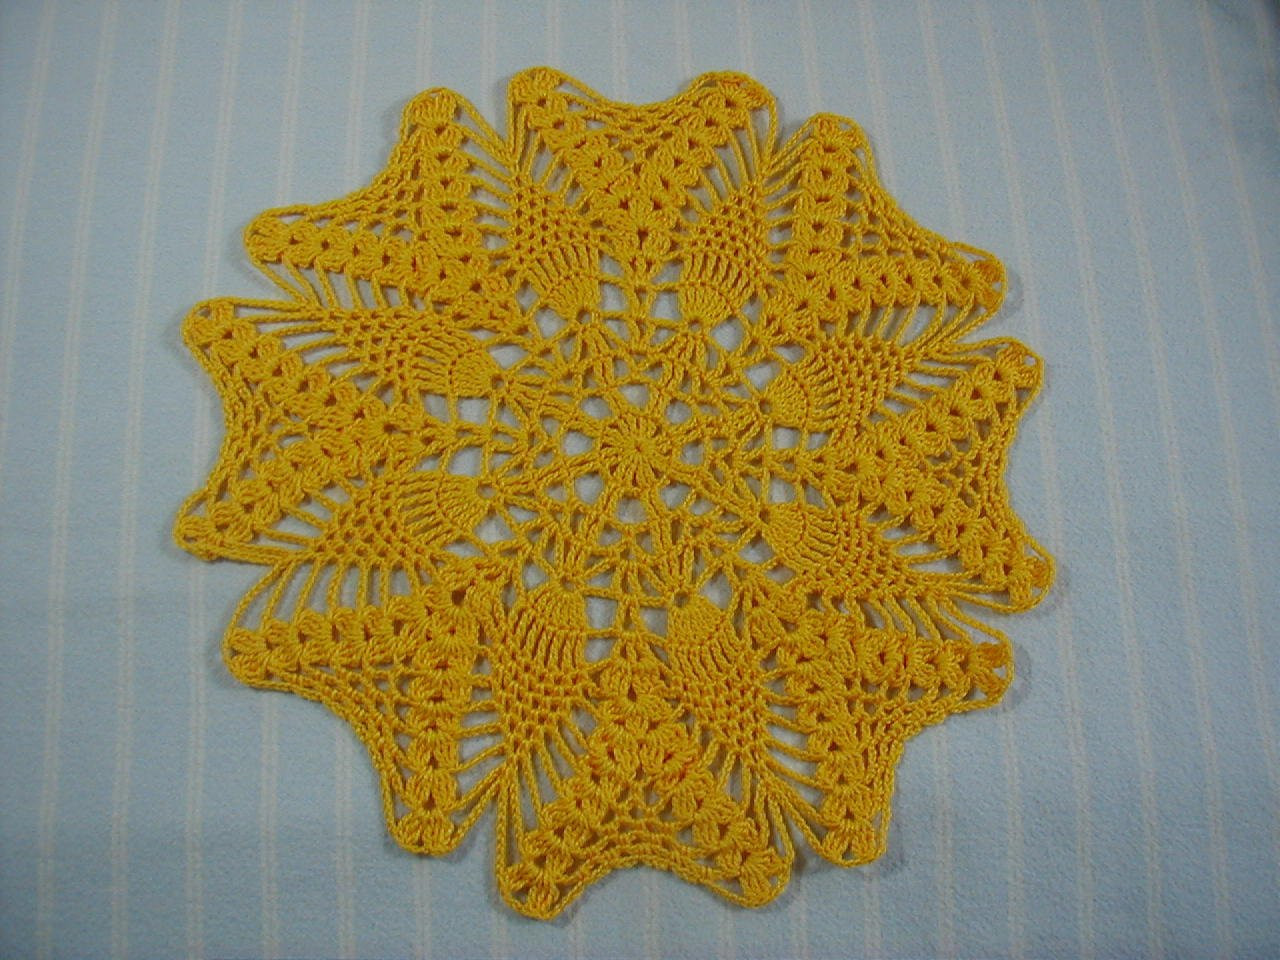 Pineapple Doily Beautiful Gold Doily 10 Inch Doily Pineapple Doily Hand Crocheted Cotton Of Top 46 Photos Pineapple Doily